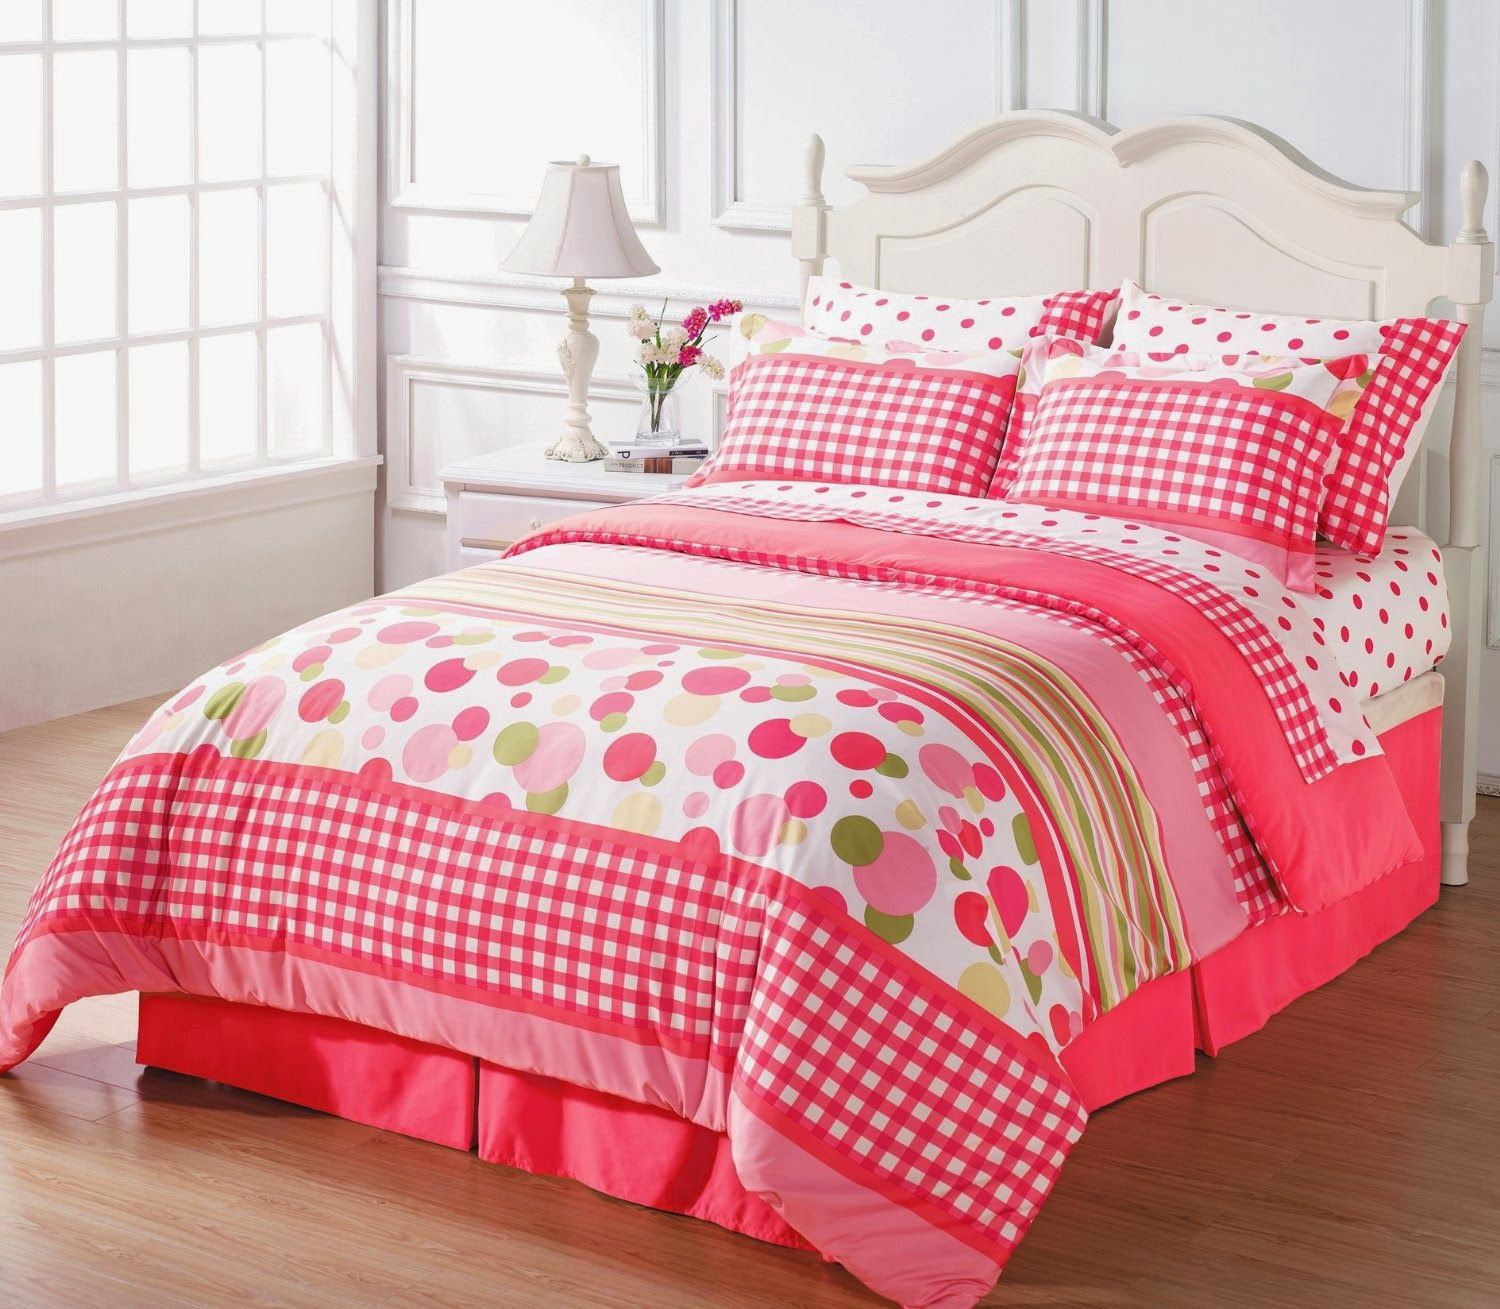 chezmoi collection soft pink white green polka dot plaid bed in a bag comforter with sheet set queen